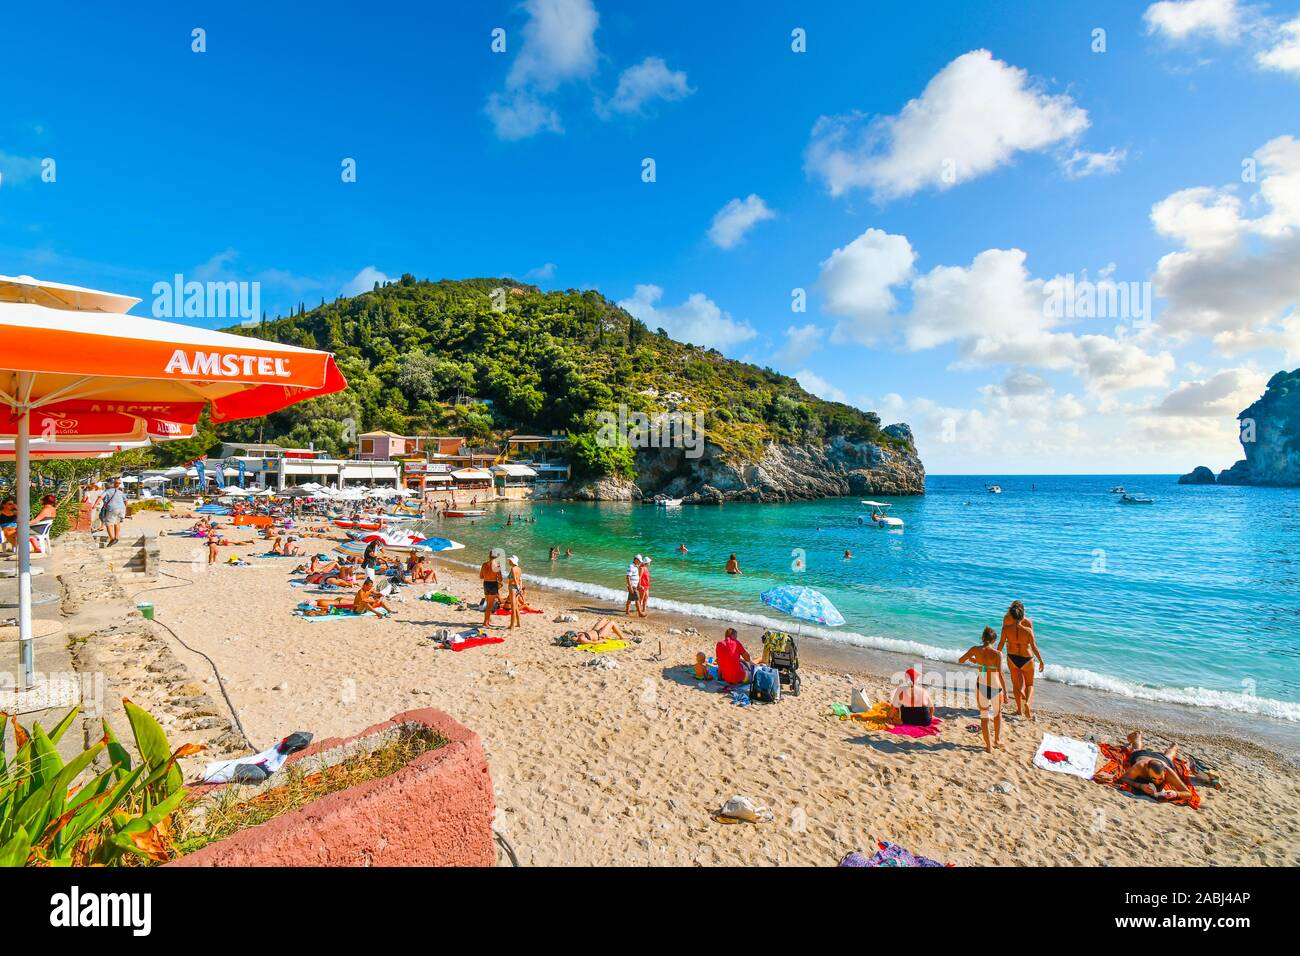 Tourists relax and swim in the clear turquoise waters and on the sandy Palaiokastritsa beach on the Aegean island of Corfu, Greece. Stock Photo